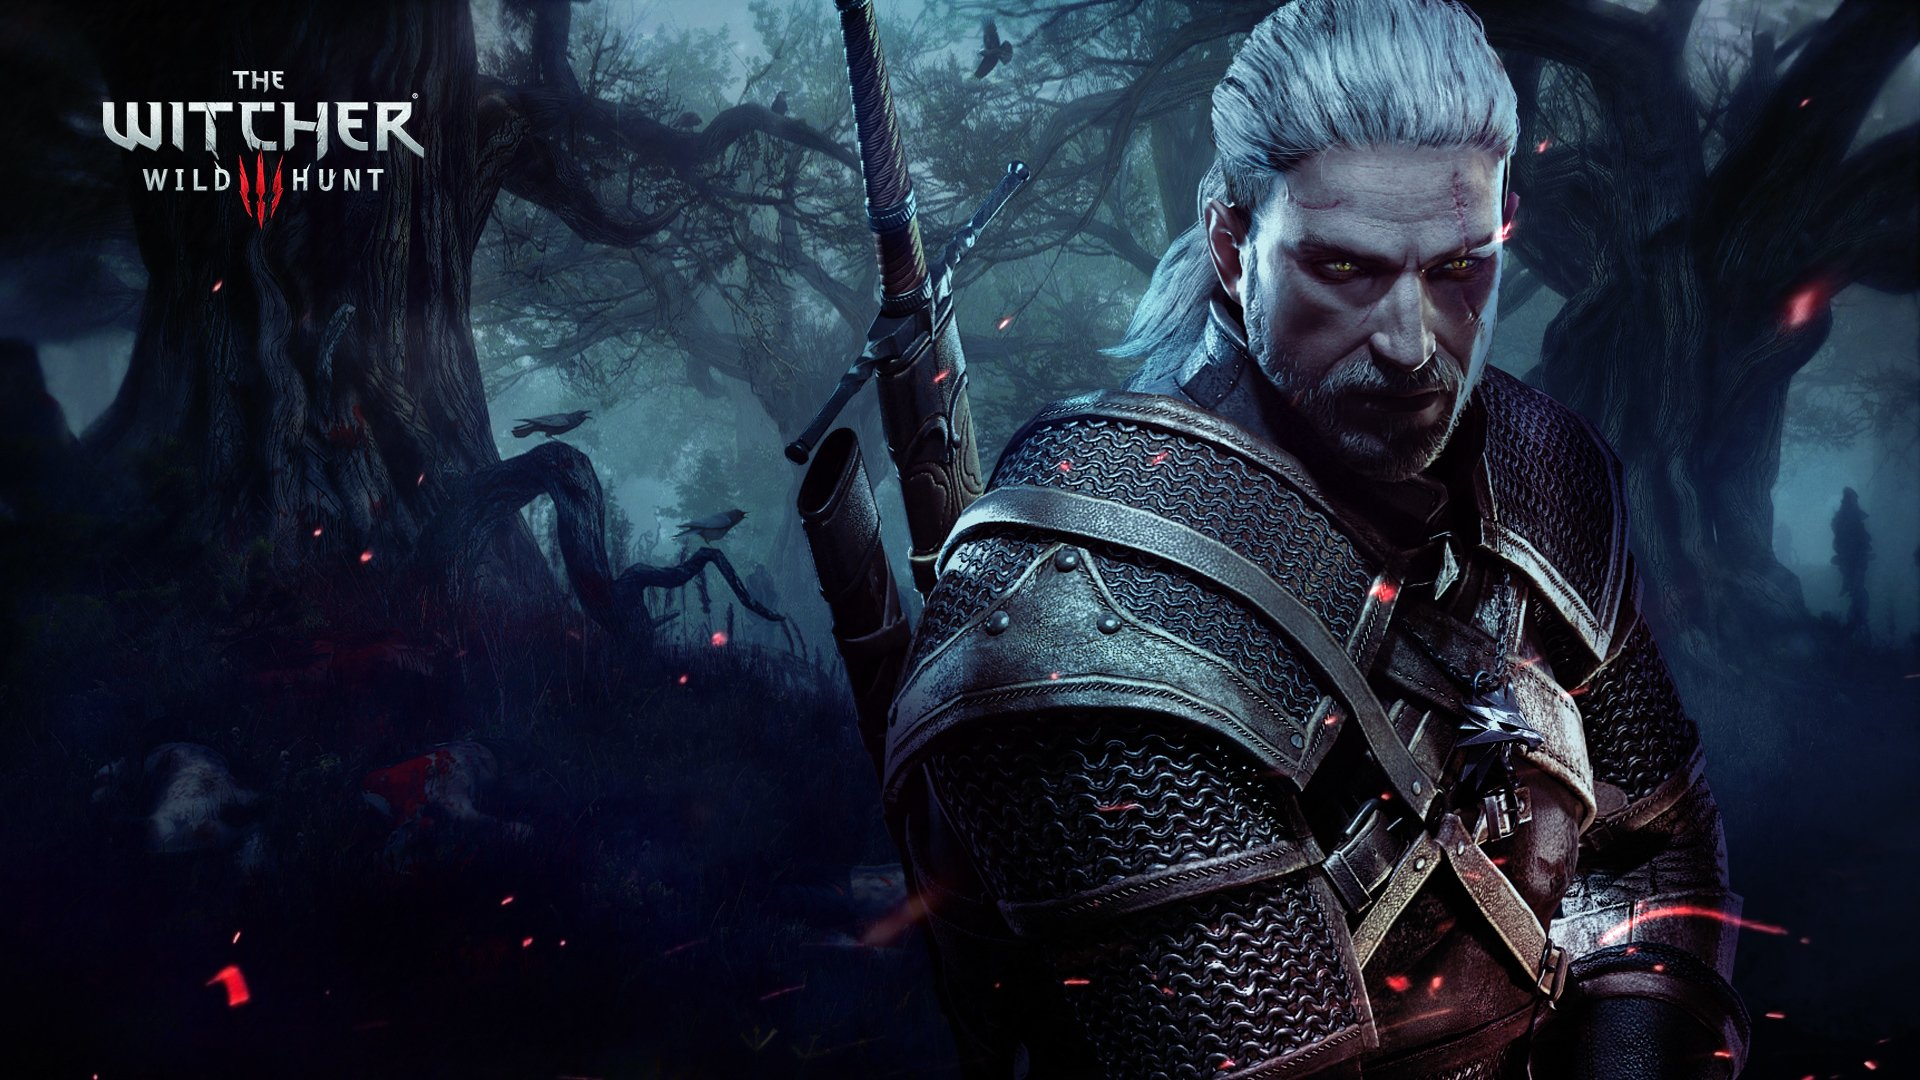 The Witcher 3 Wild Hunt Fondo De Pantalla Hd Fondo De